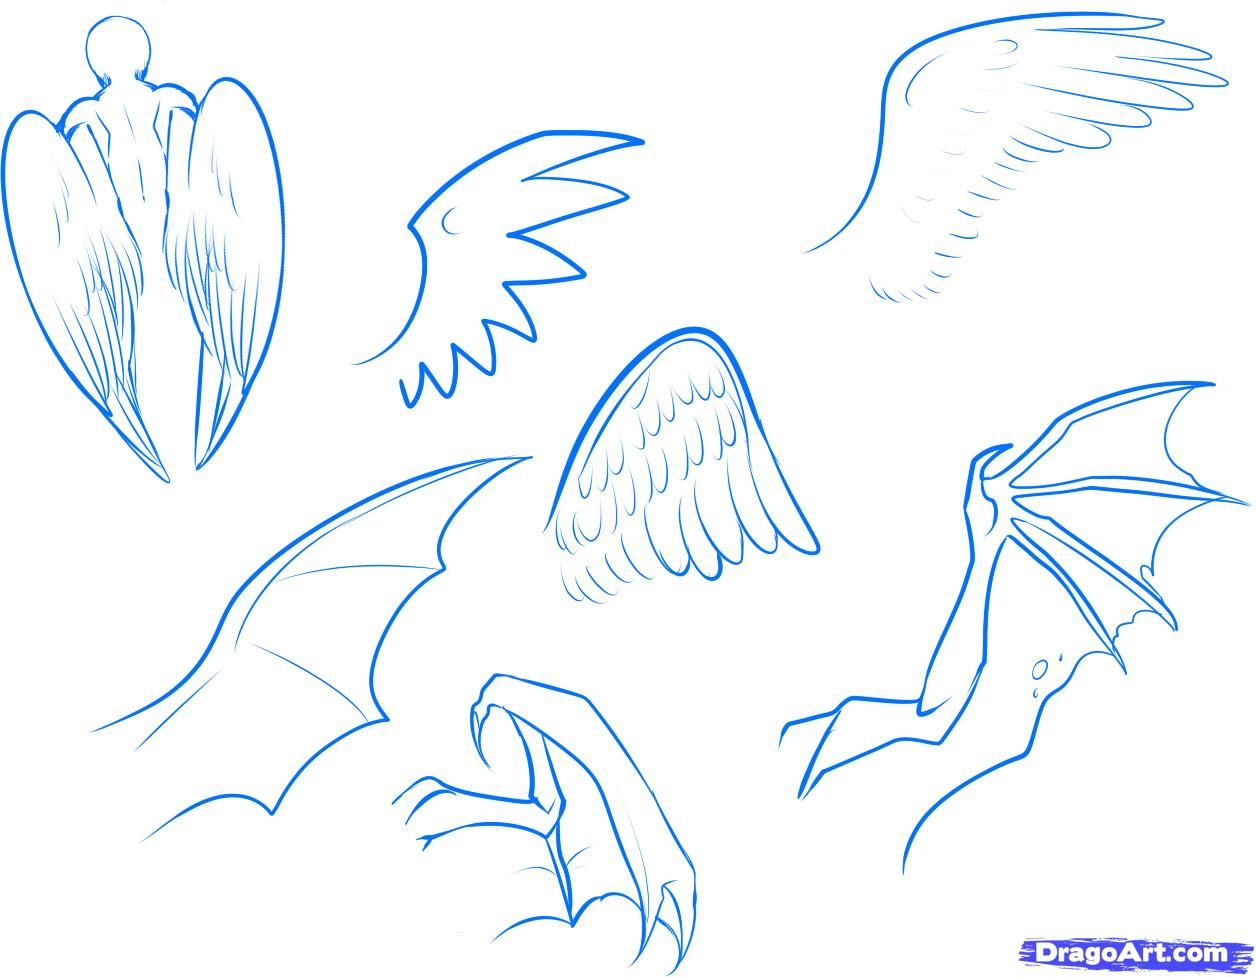 How To Draw Anime Wings, Draw An Anime Angel, Step By Step, Anime